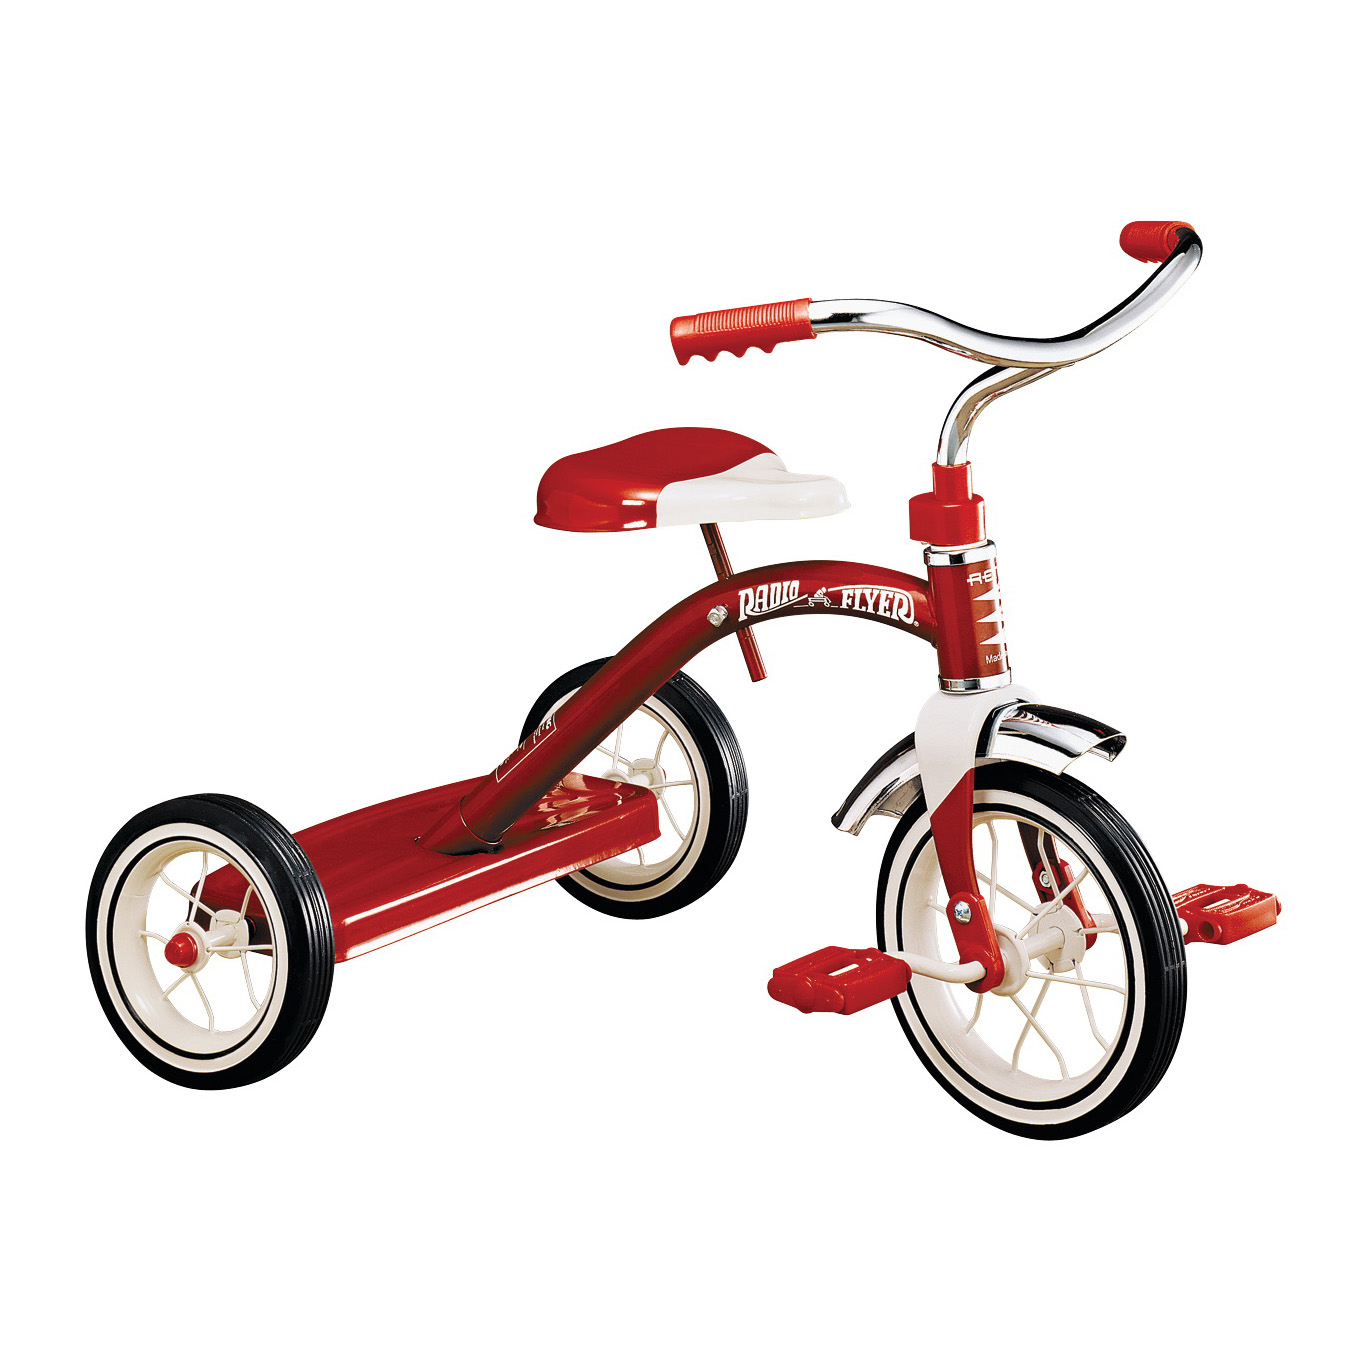 Picture of RADIO FLYER 34B Tricycle, 2 to 4 years, Steel Frame, 10 x 1-1/4 in Front Wheel, 7 x 1-1/2 in Rear Wheel, Red